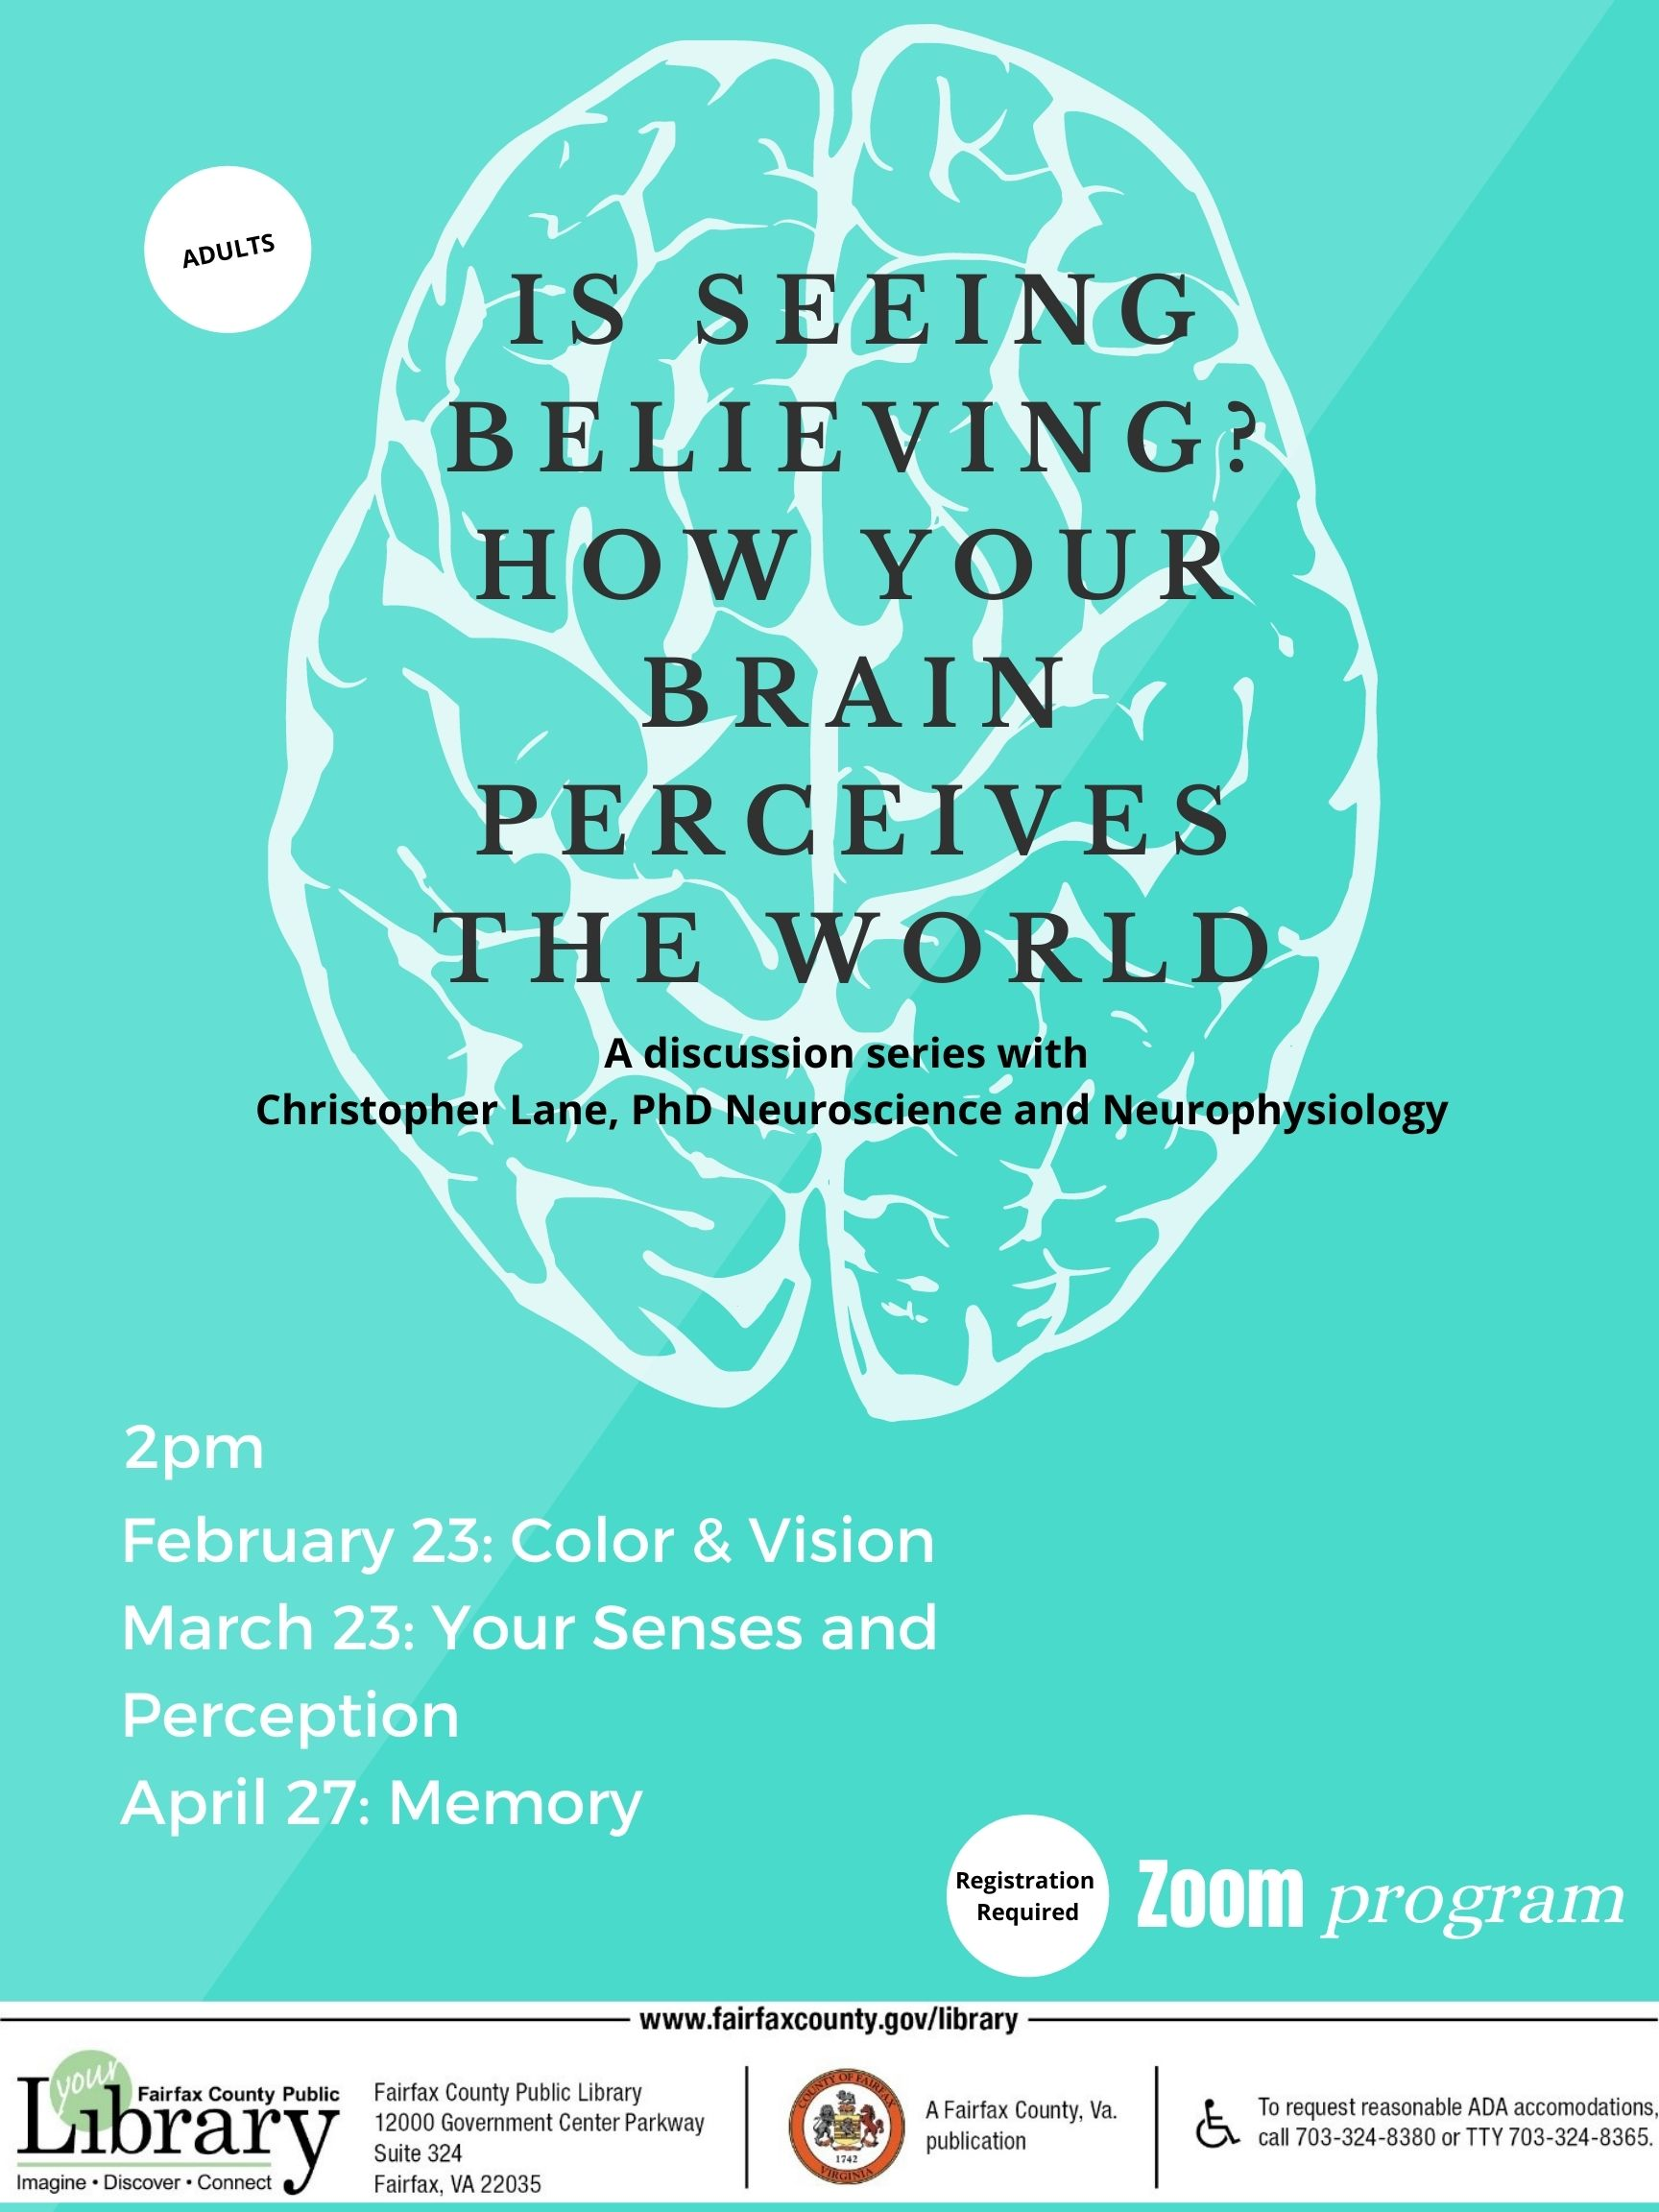 Is Seeing Believing? How Your Brain Perceives the World: Your Senses & Perception